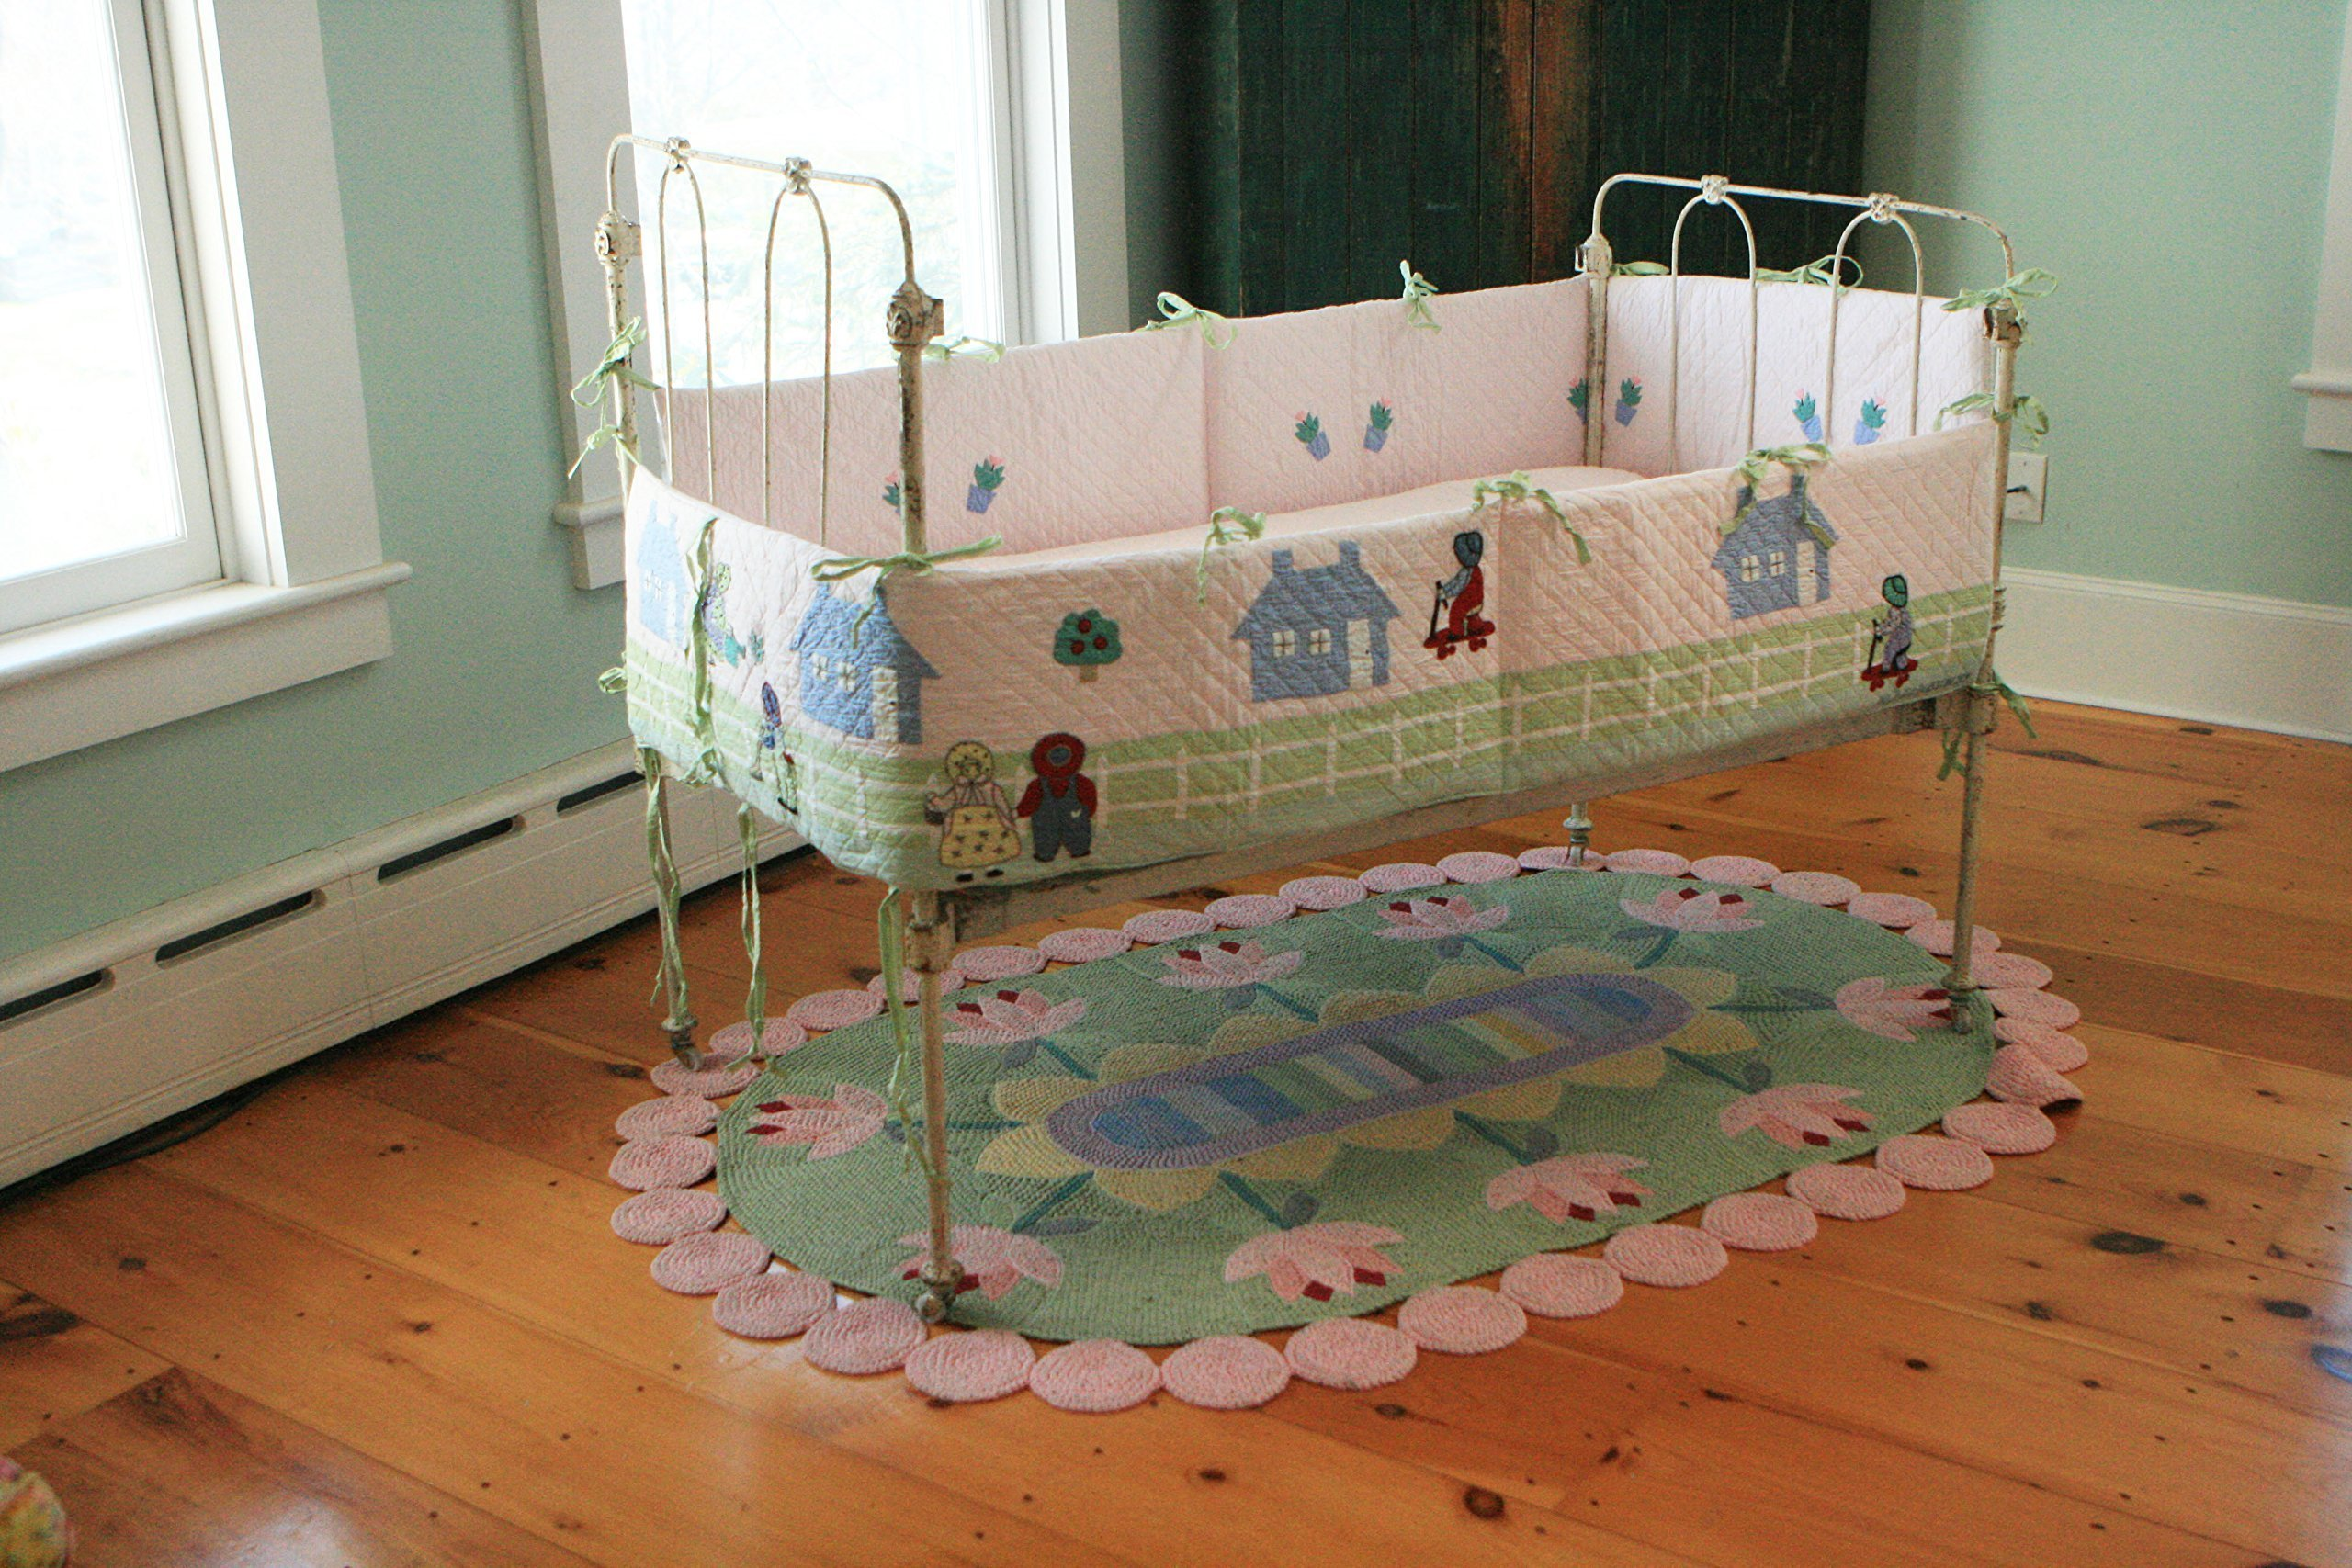 Designed by Judi Boisson.'' Katy and her Neighbors''-Home, Where Little Girls want to Live-Garden Where Little Girls want to Play, Neighbors,Where Little girls like to Share. Washable.